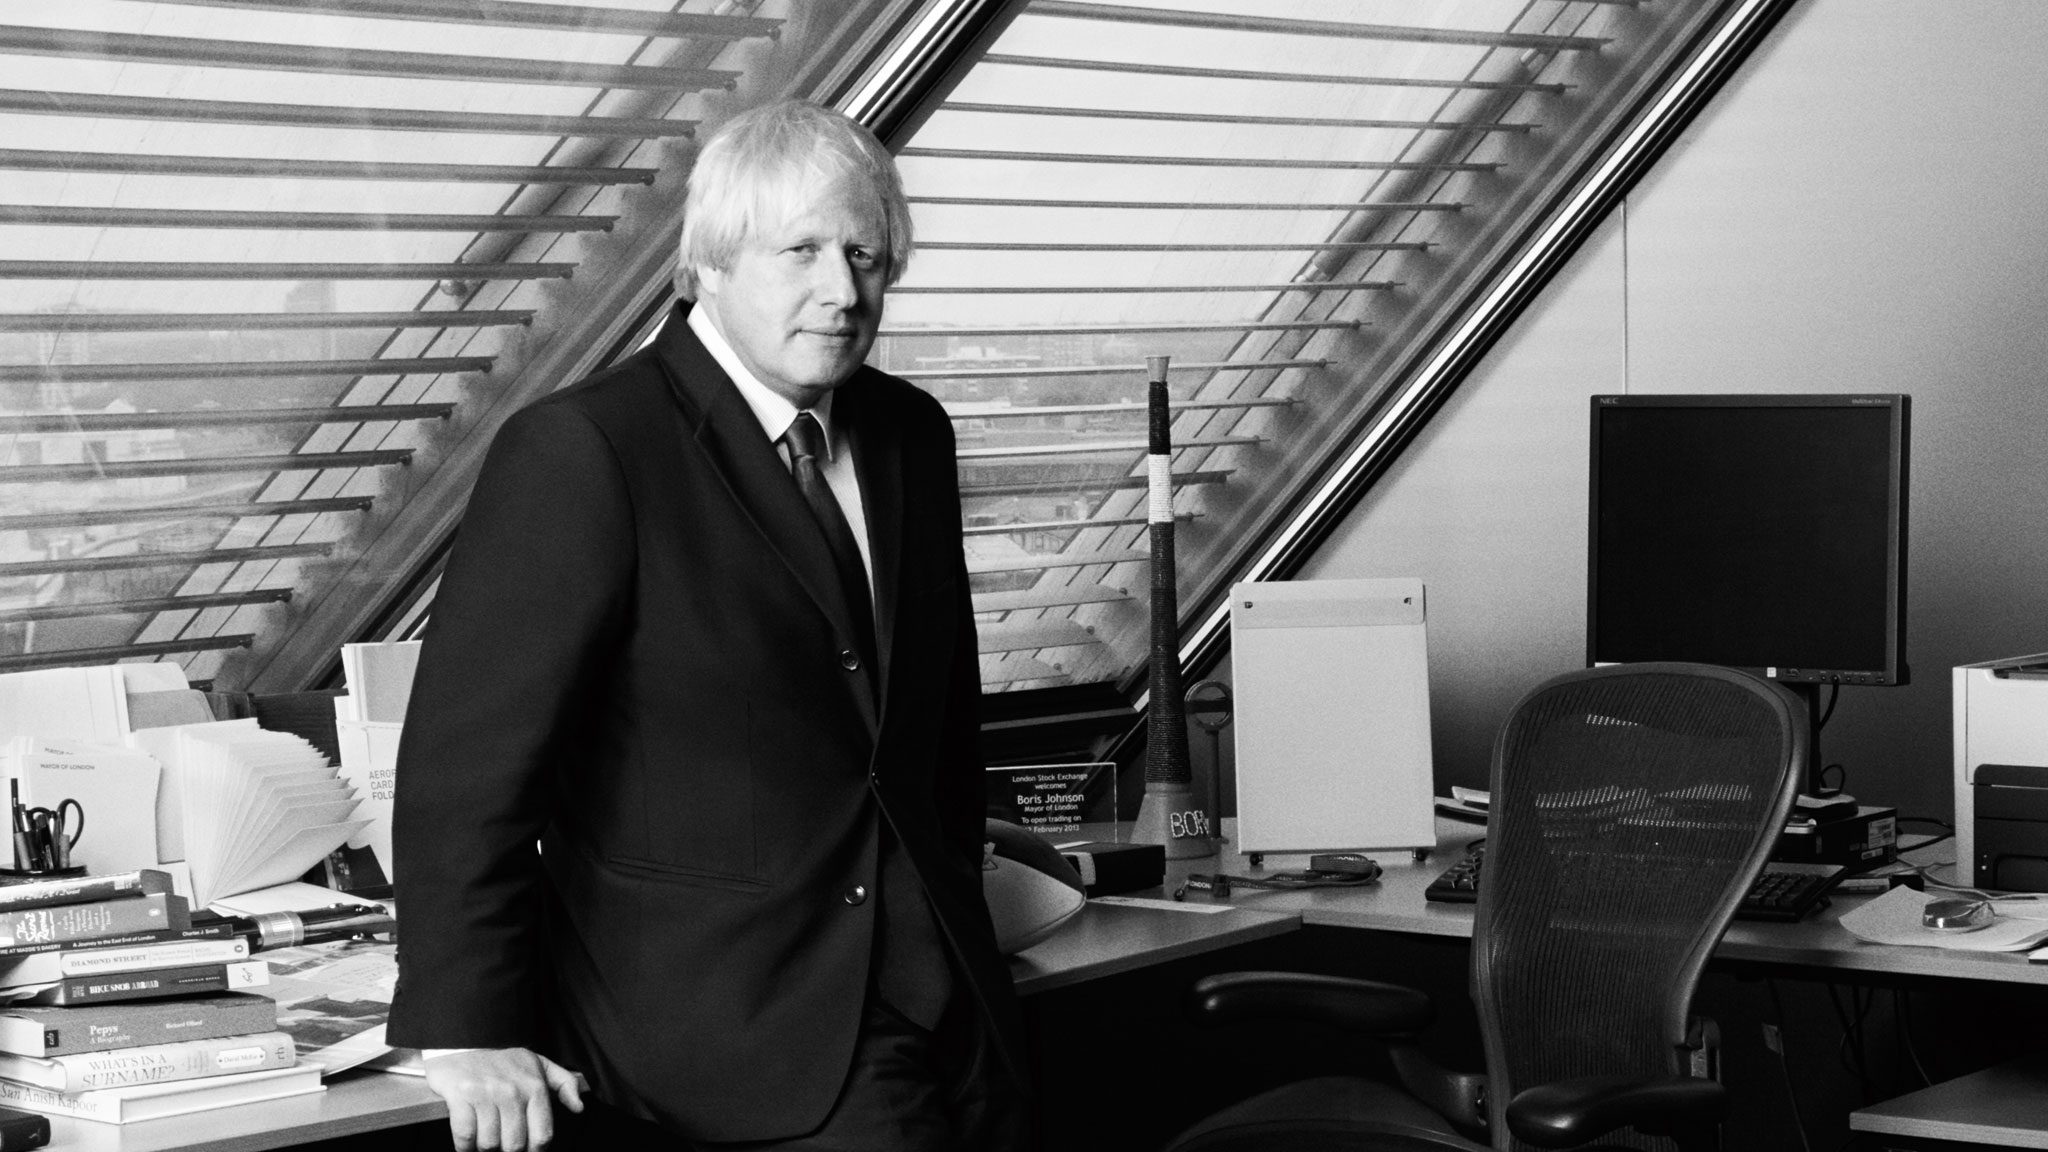 Does Boris Johnson want to be prime minister?